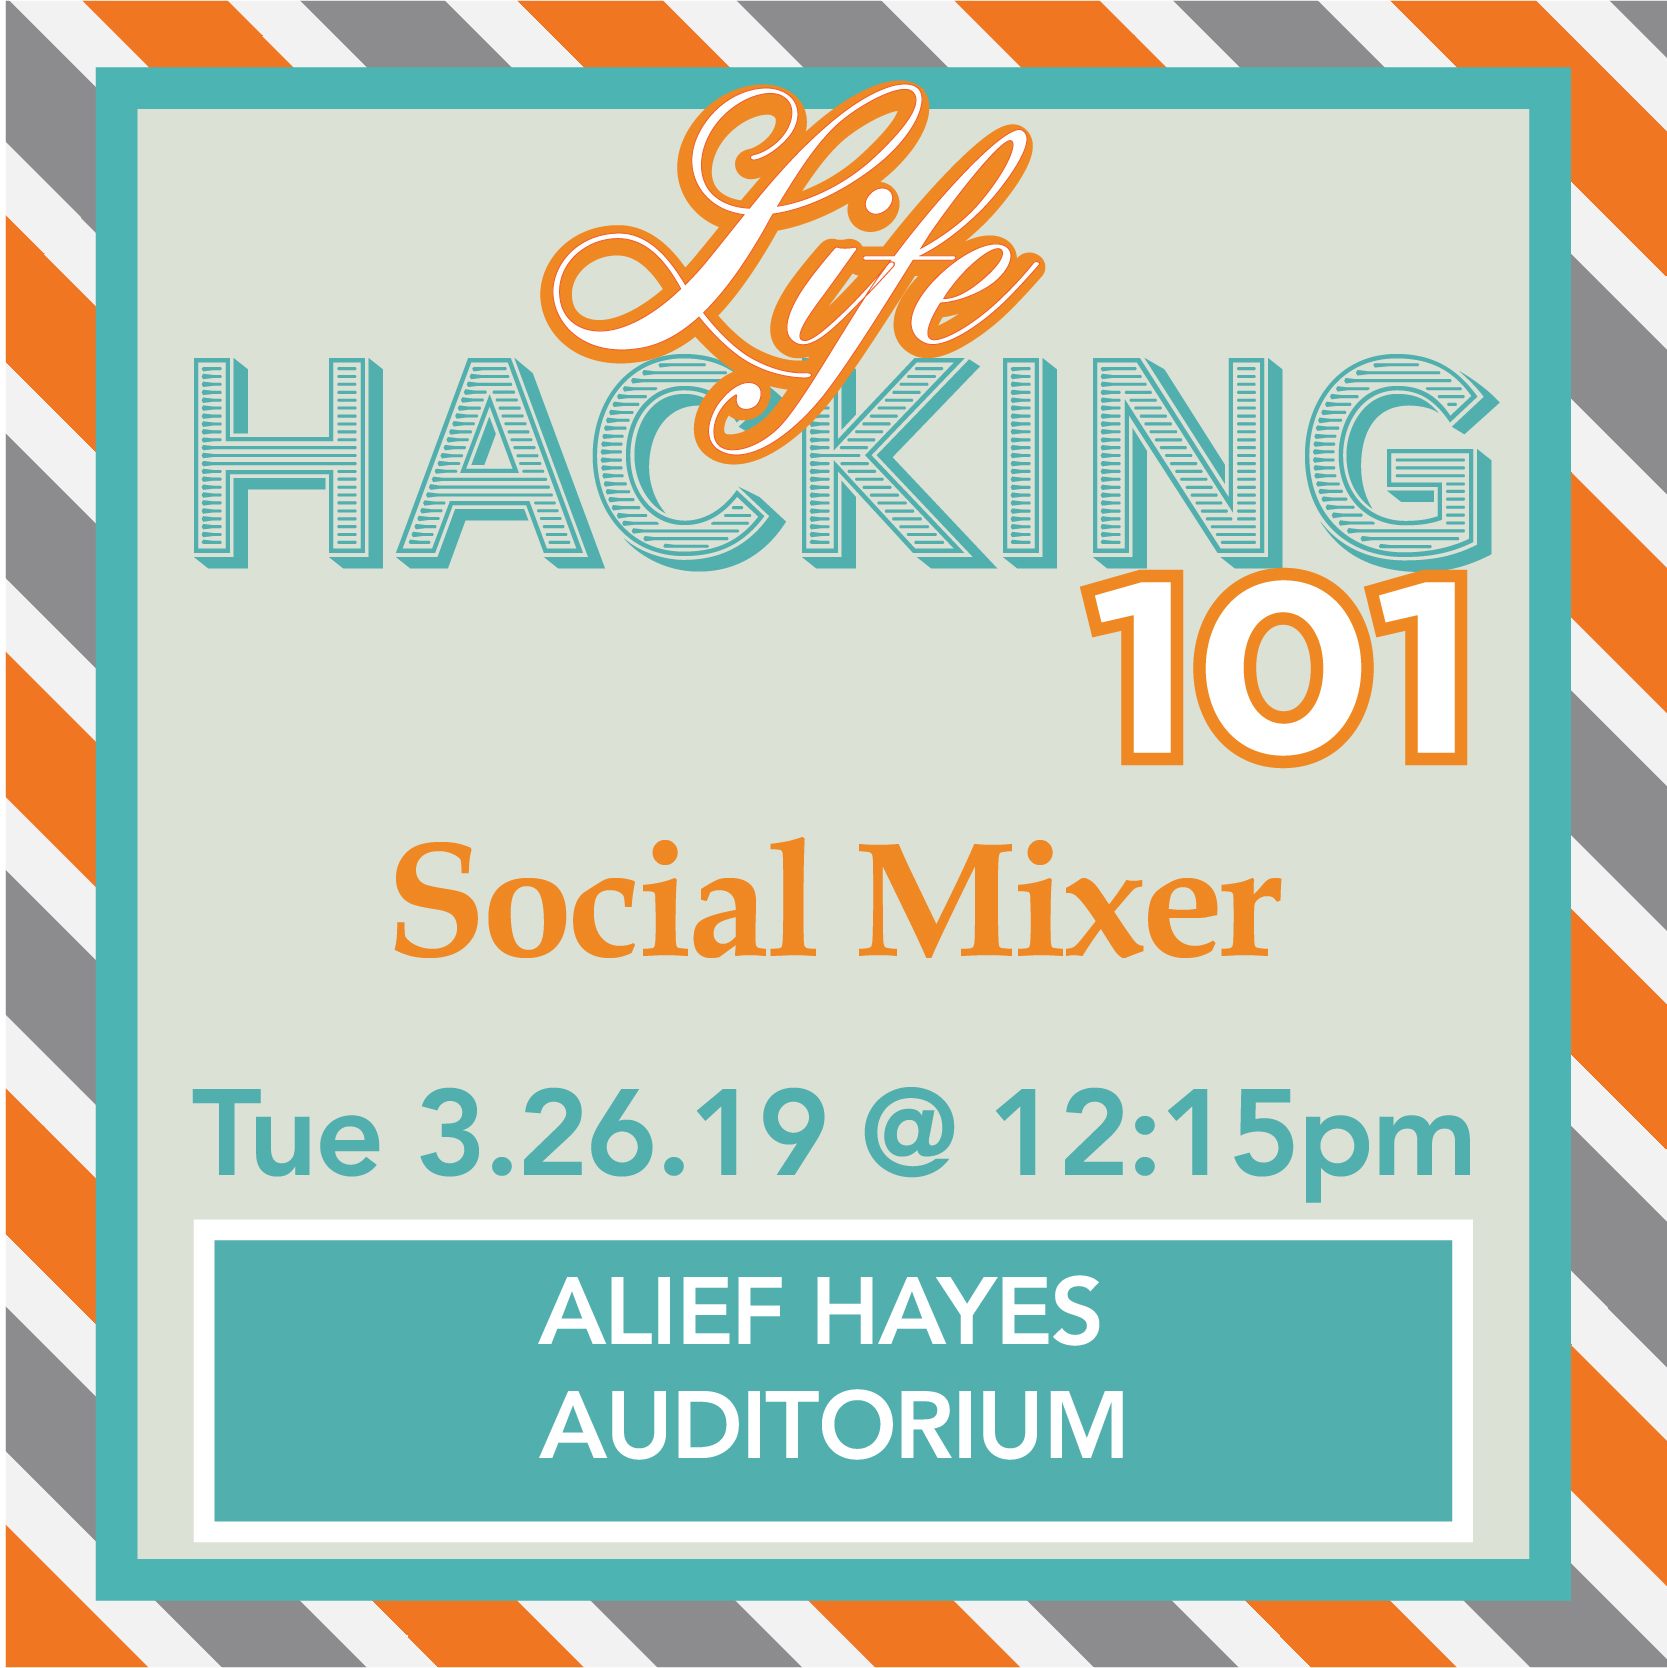 [AH] Lifehacking 101: Social Mixer